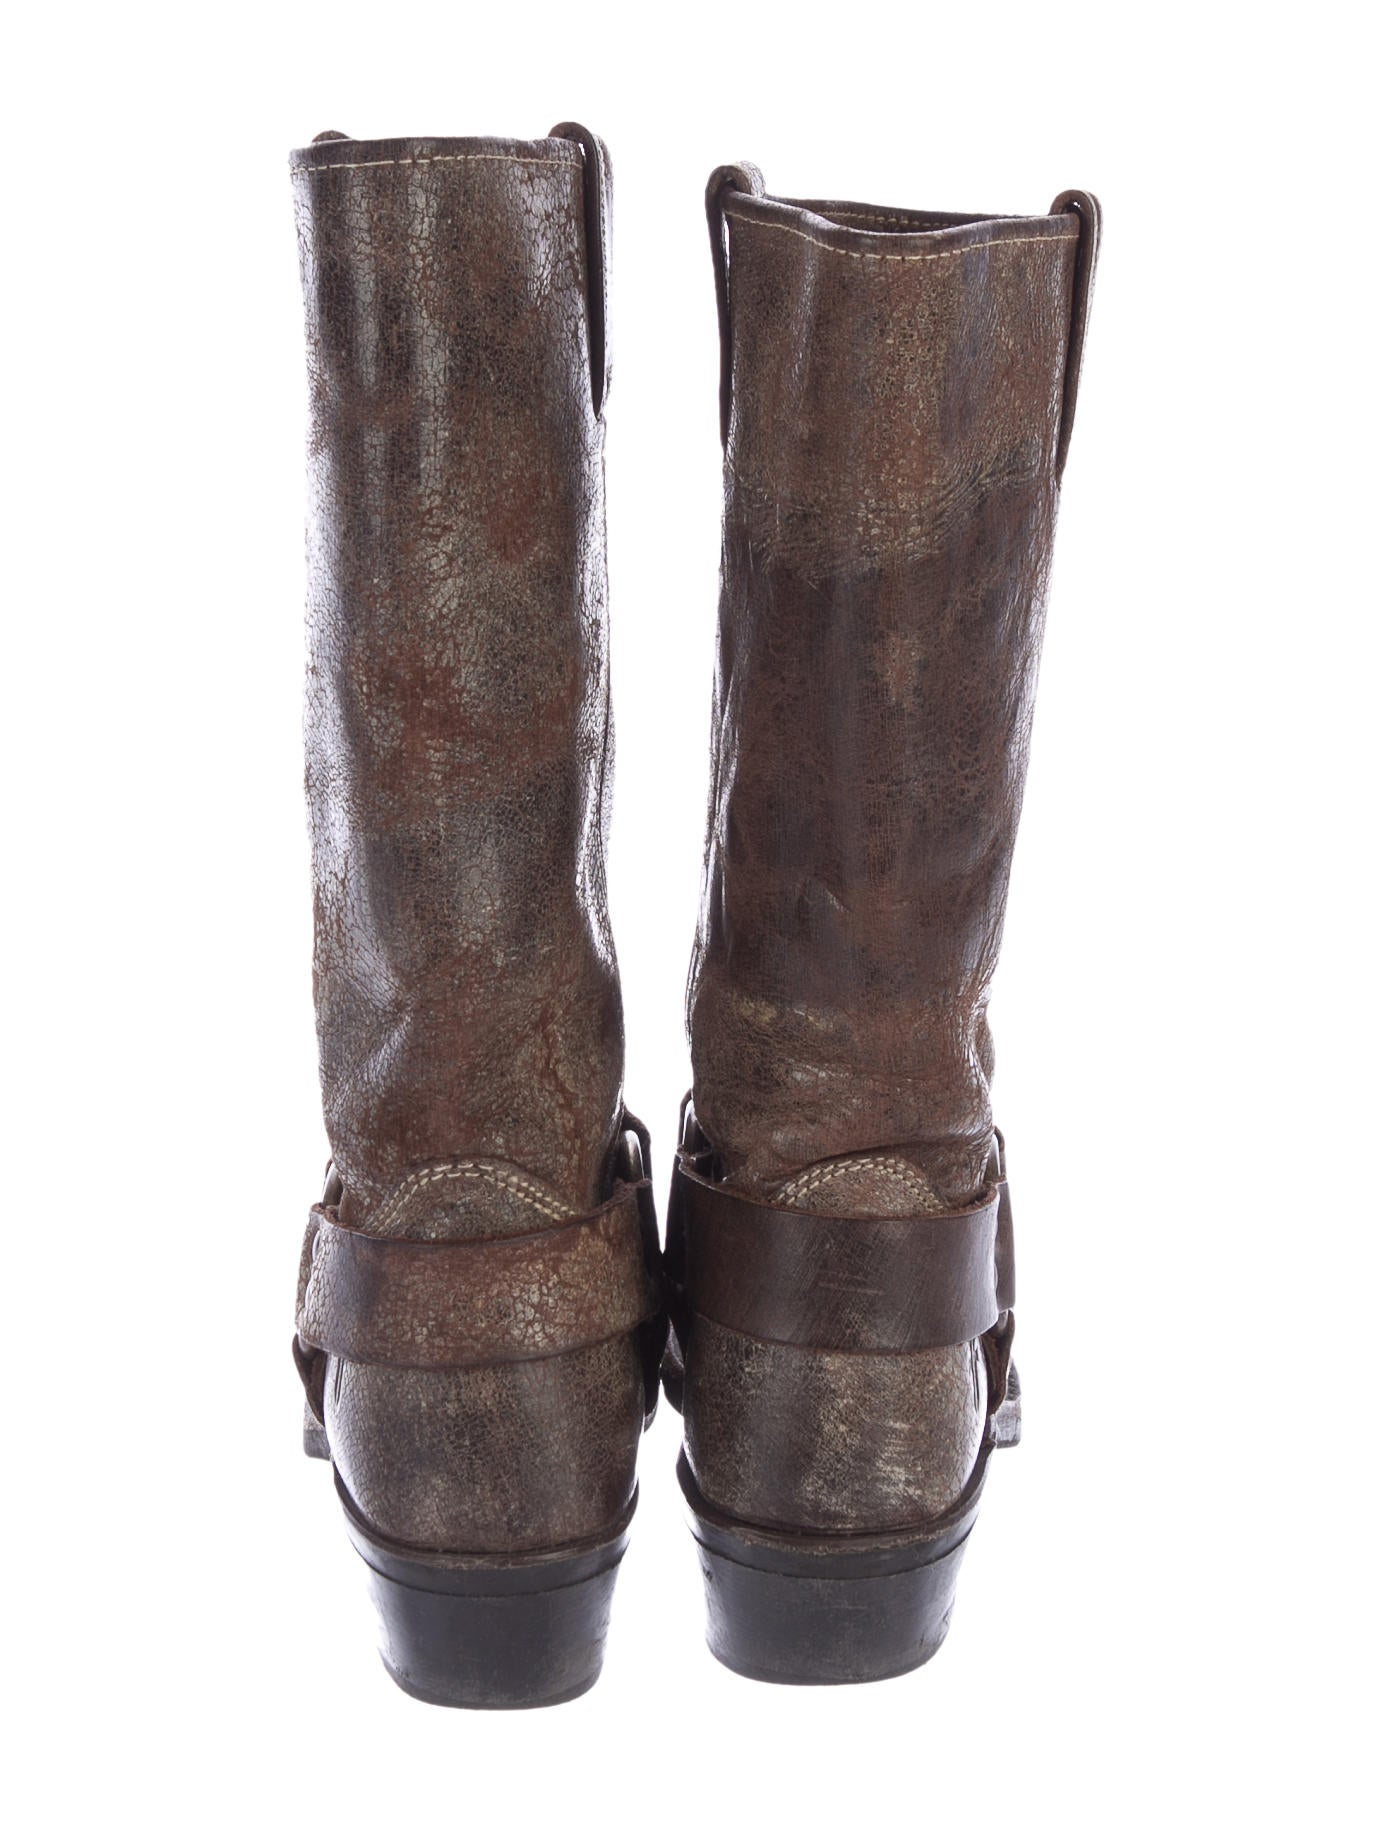 Antique Dining Room Tables For Sale Frye Distressed Cowboy Boots Shoes Wf821466 The Realreal